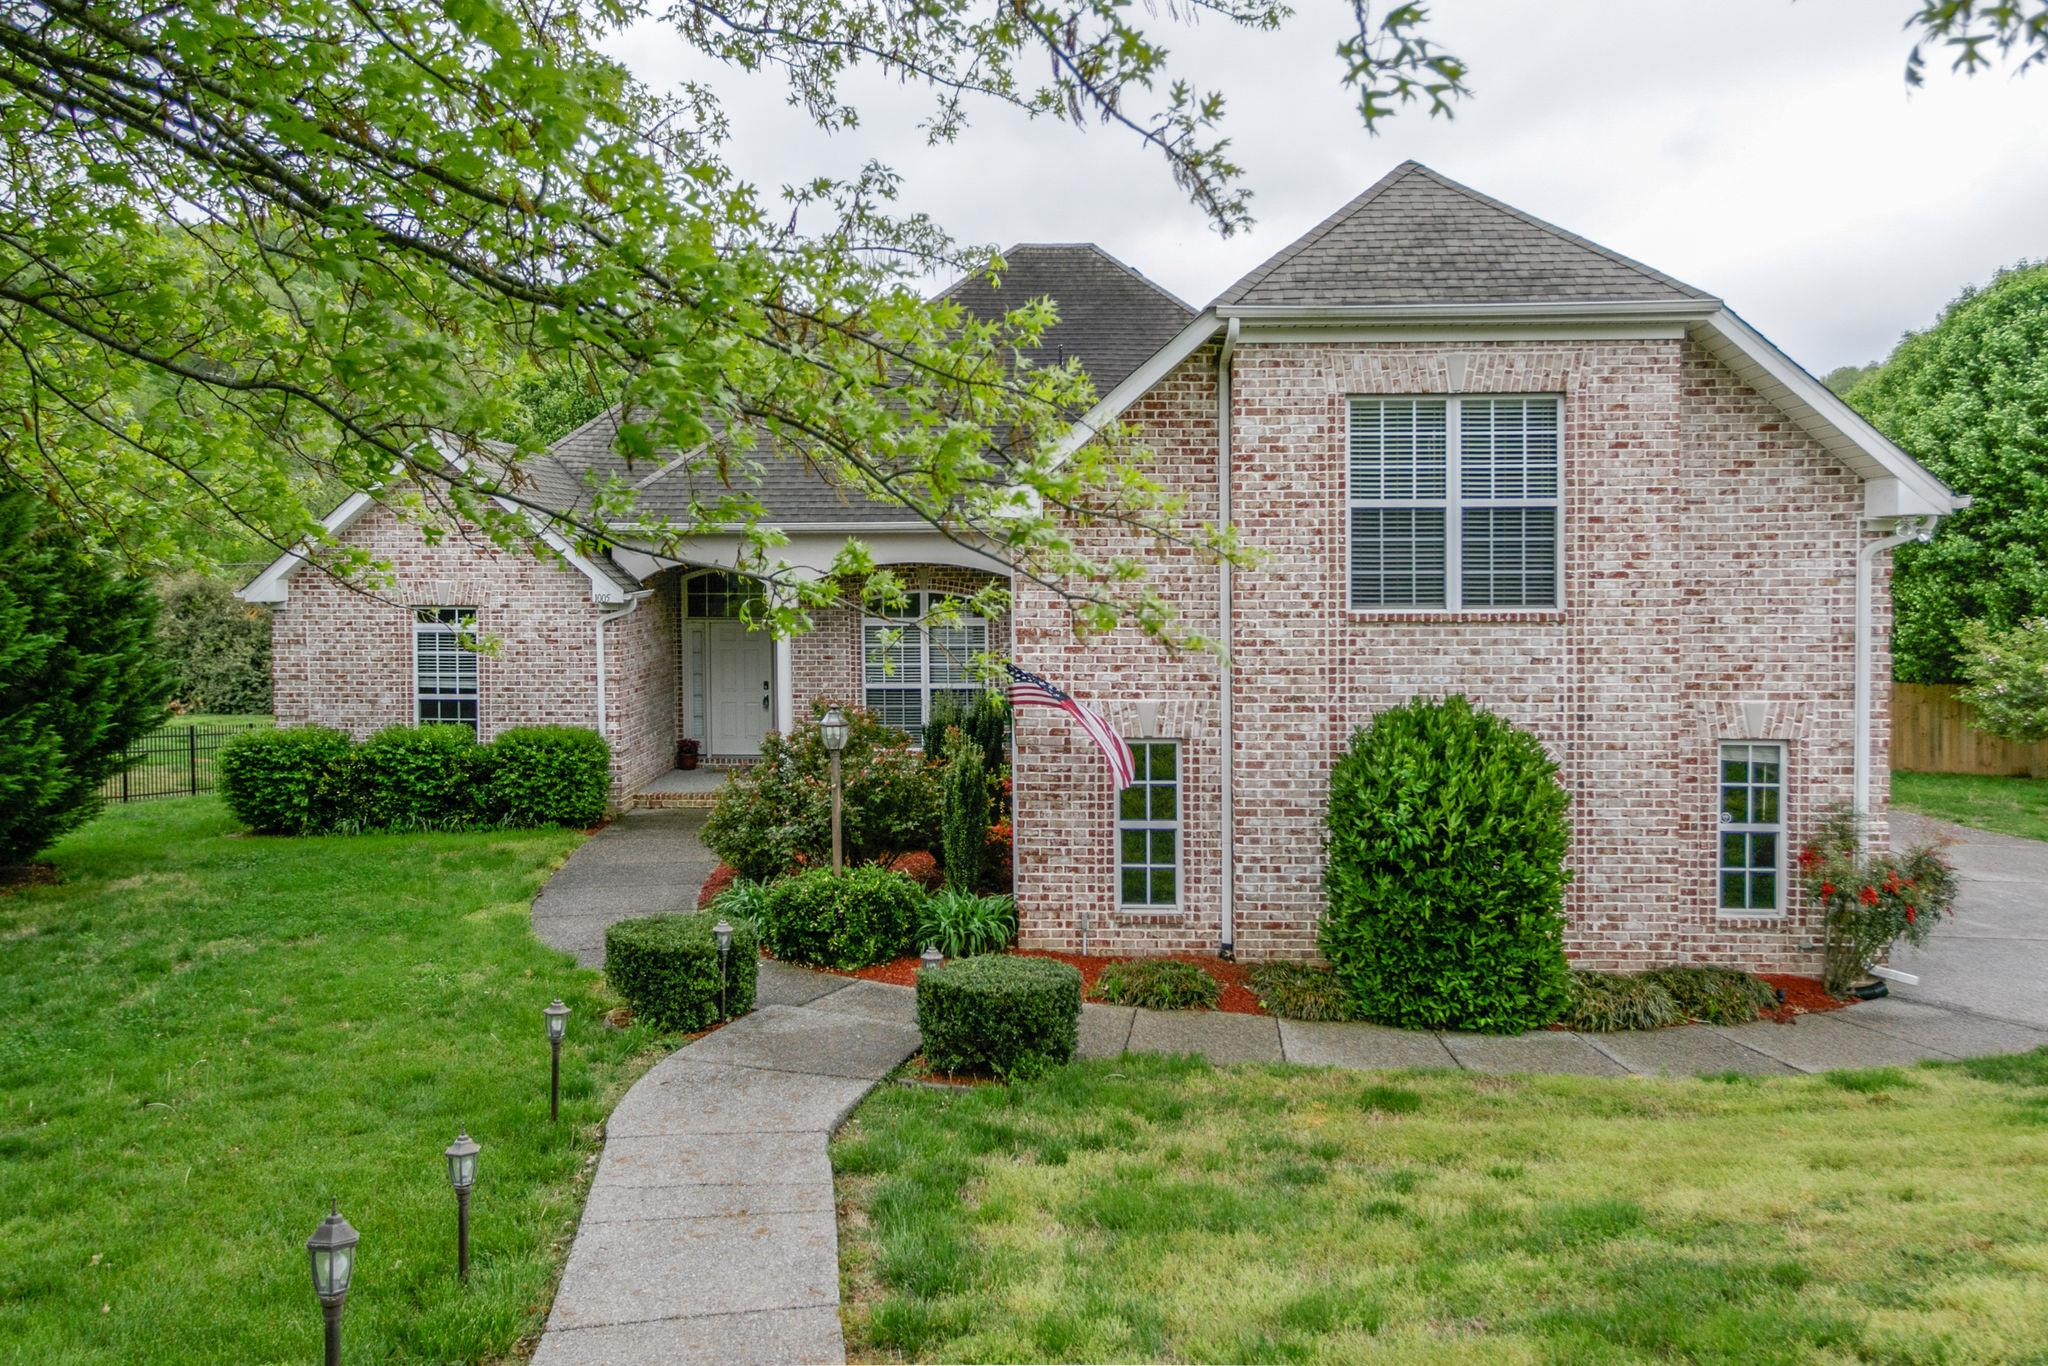 1005 Winton Ct, Hendersonville in Sumner County County, TN 37075 Home for Sale